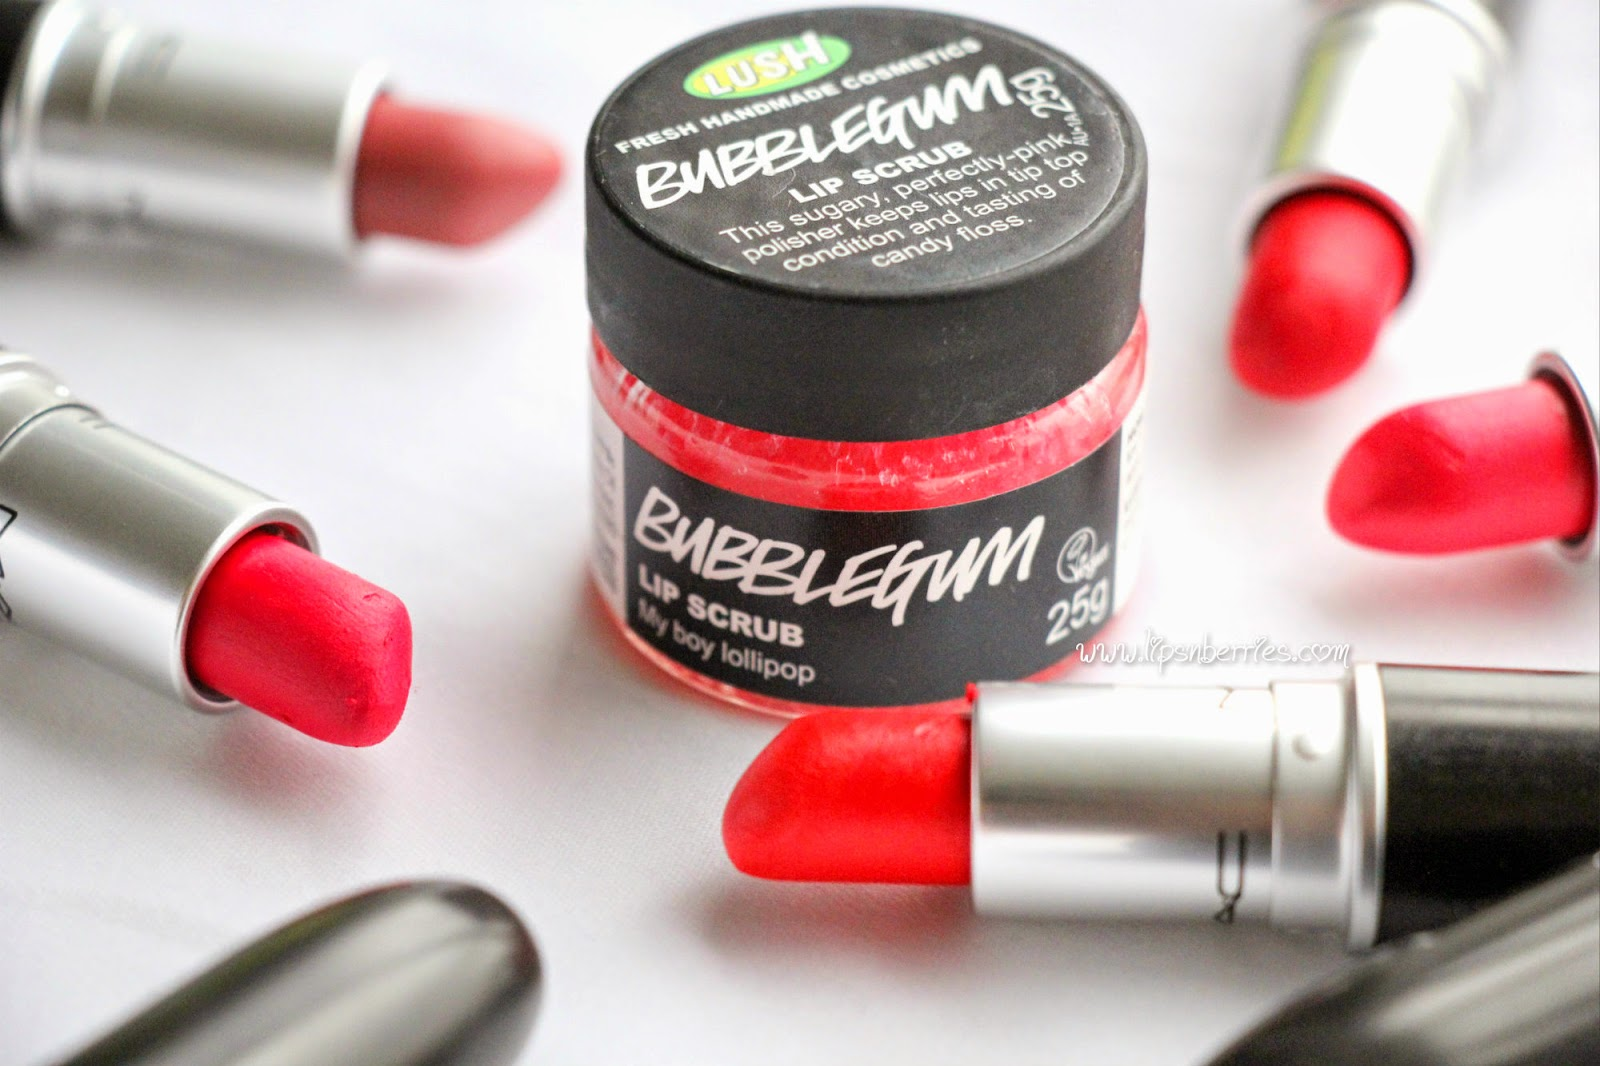 Lush bubblegum lip scrub review